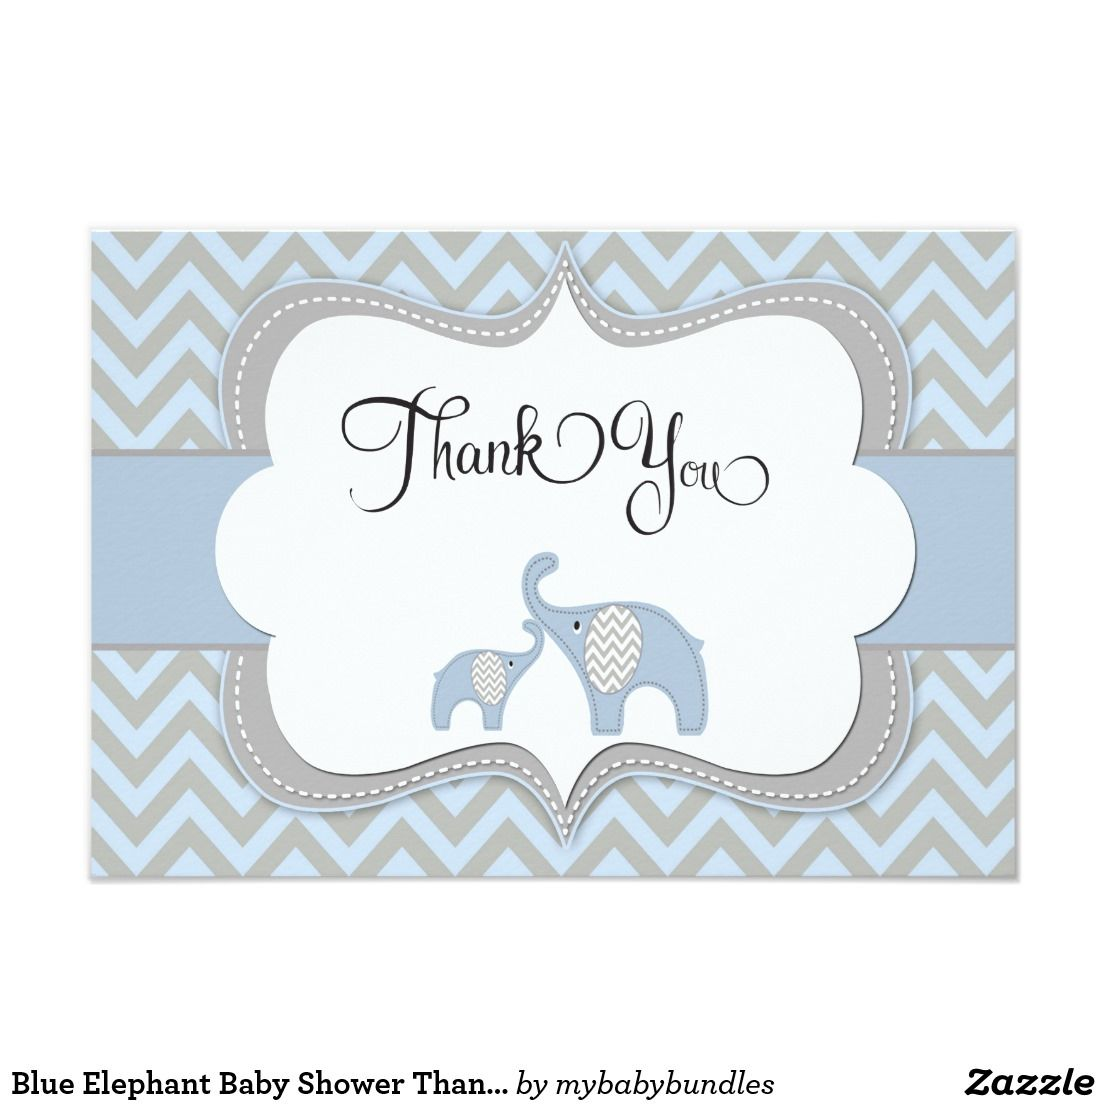 Blue Elephant Baby Shower Thank You Card Zazzle Com Baby Shower Thank You Cards Pink Elephants Baby Shower Elephant Baby Shower Invitations